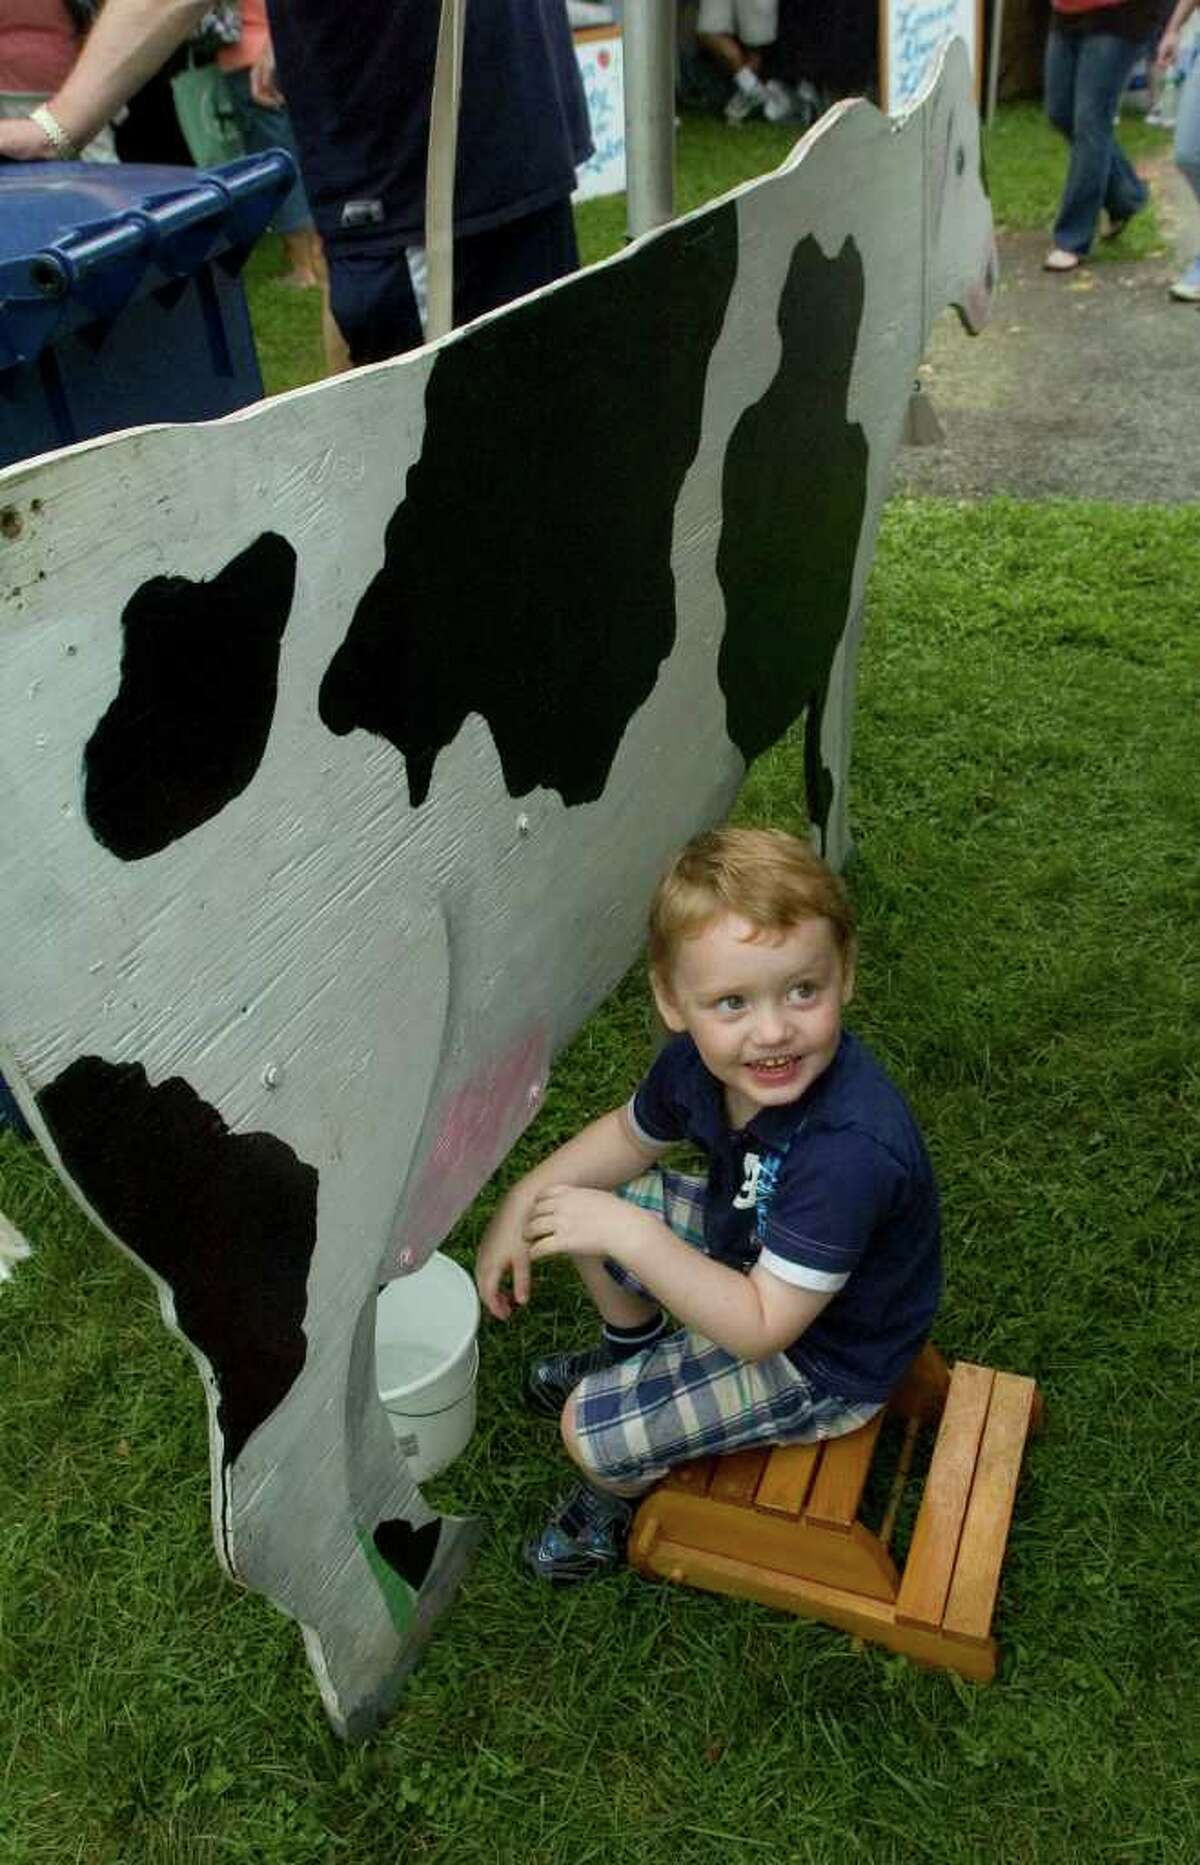 Benjamin Larmore, 4, looks to his mother after demonstrating how to milk a cow at the Sunny Valley Preserve booth that is part of The Nature Conservancy during the 44th Annual New Milford Village Fair Days on Friday, July 29, 2011.